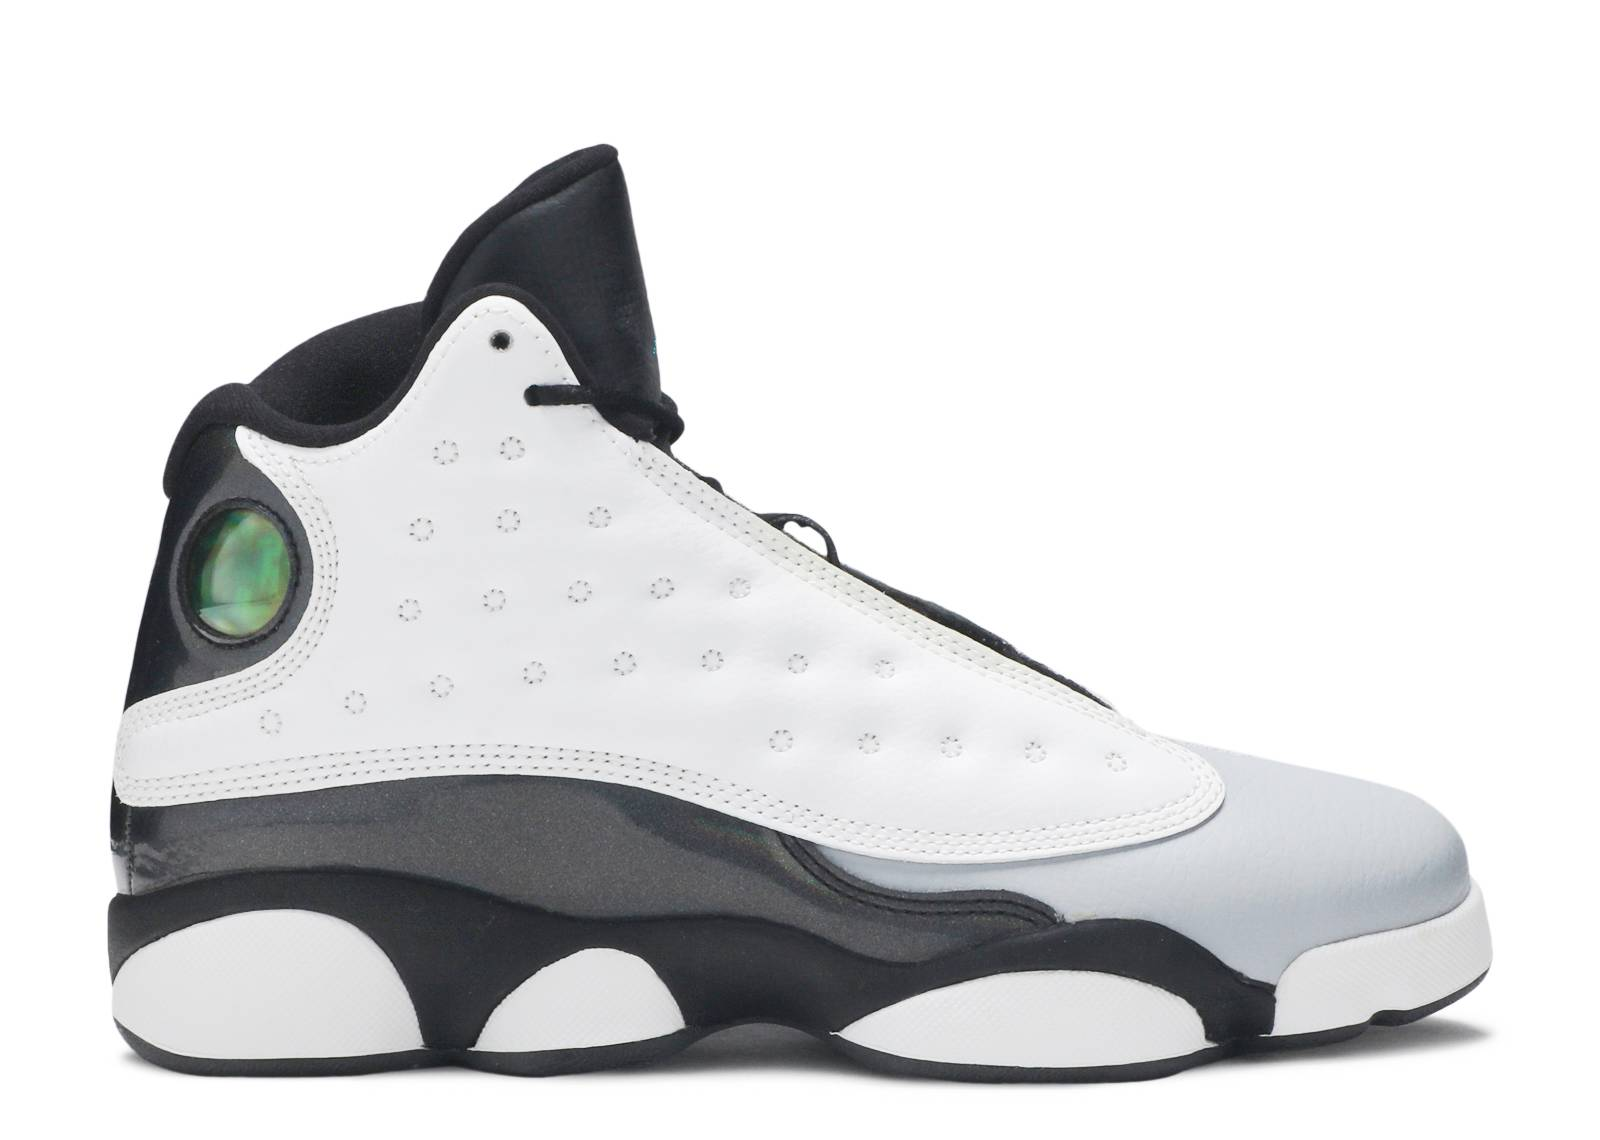 Air Jordan 13 Barons Gs